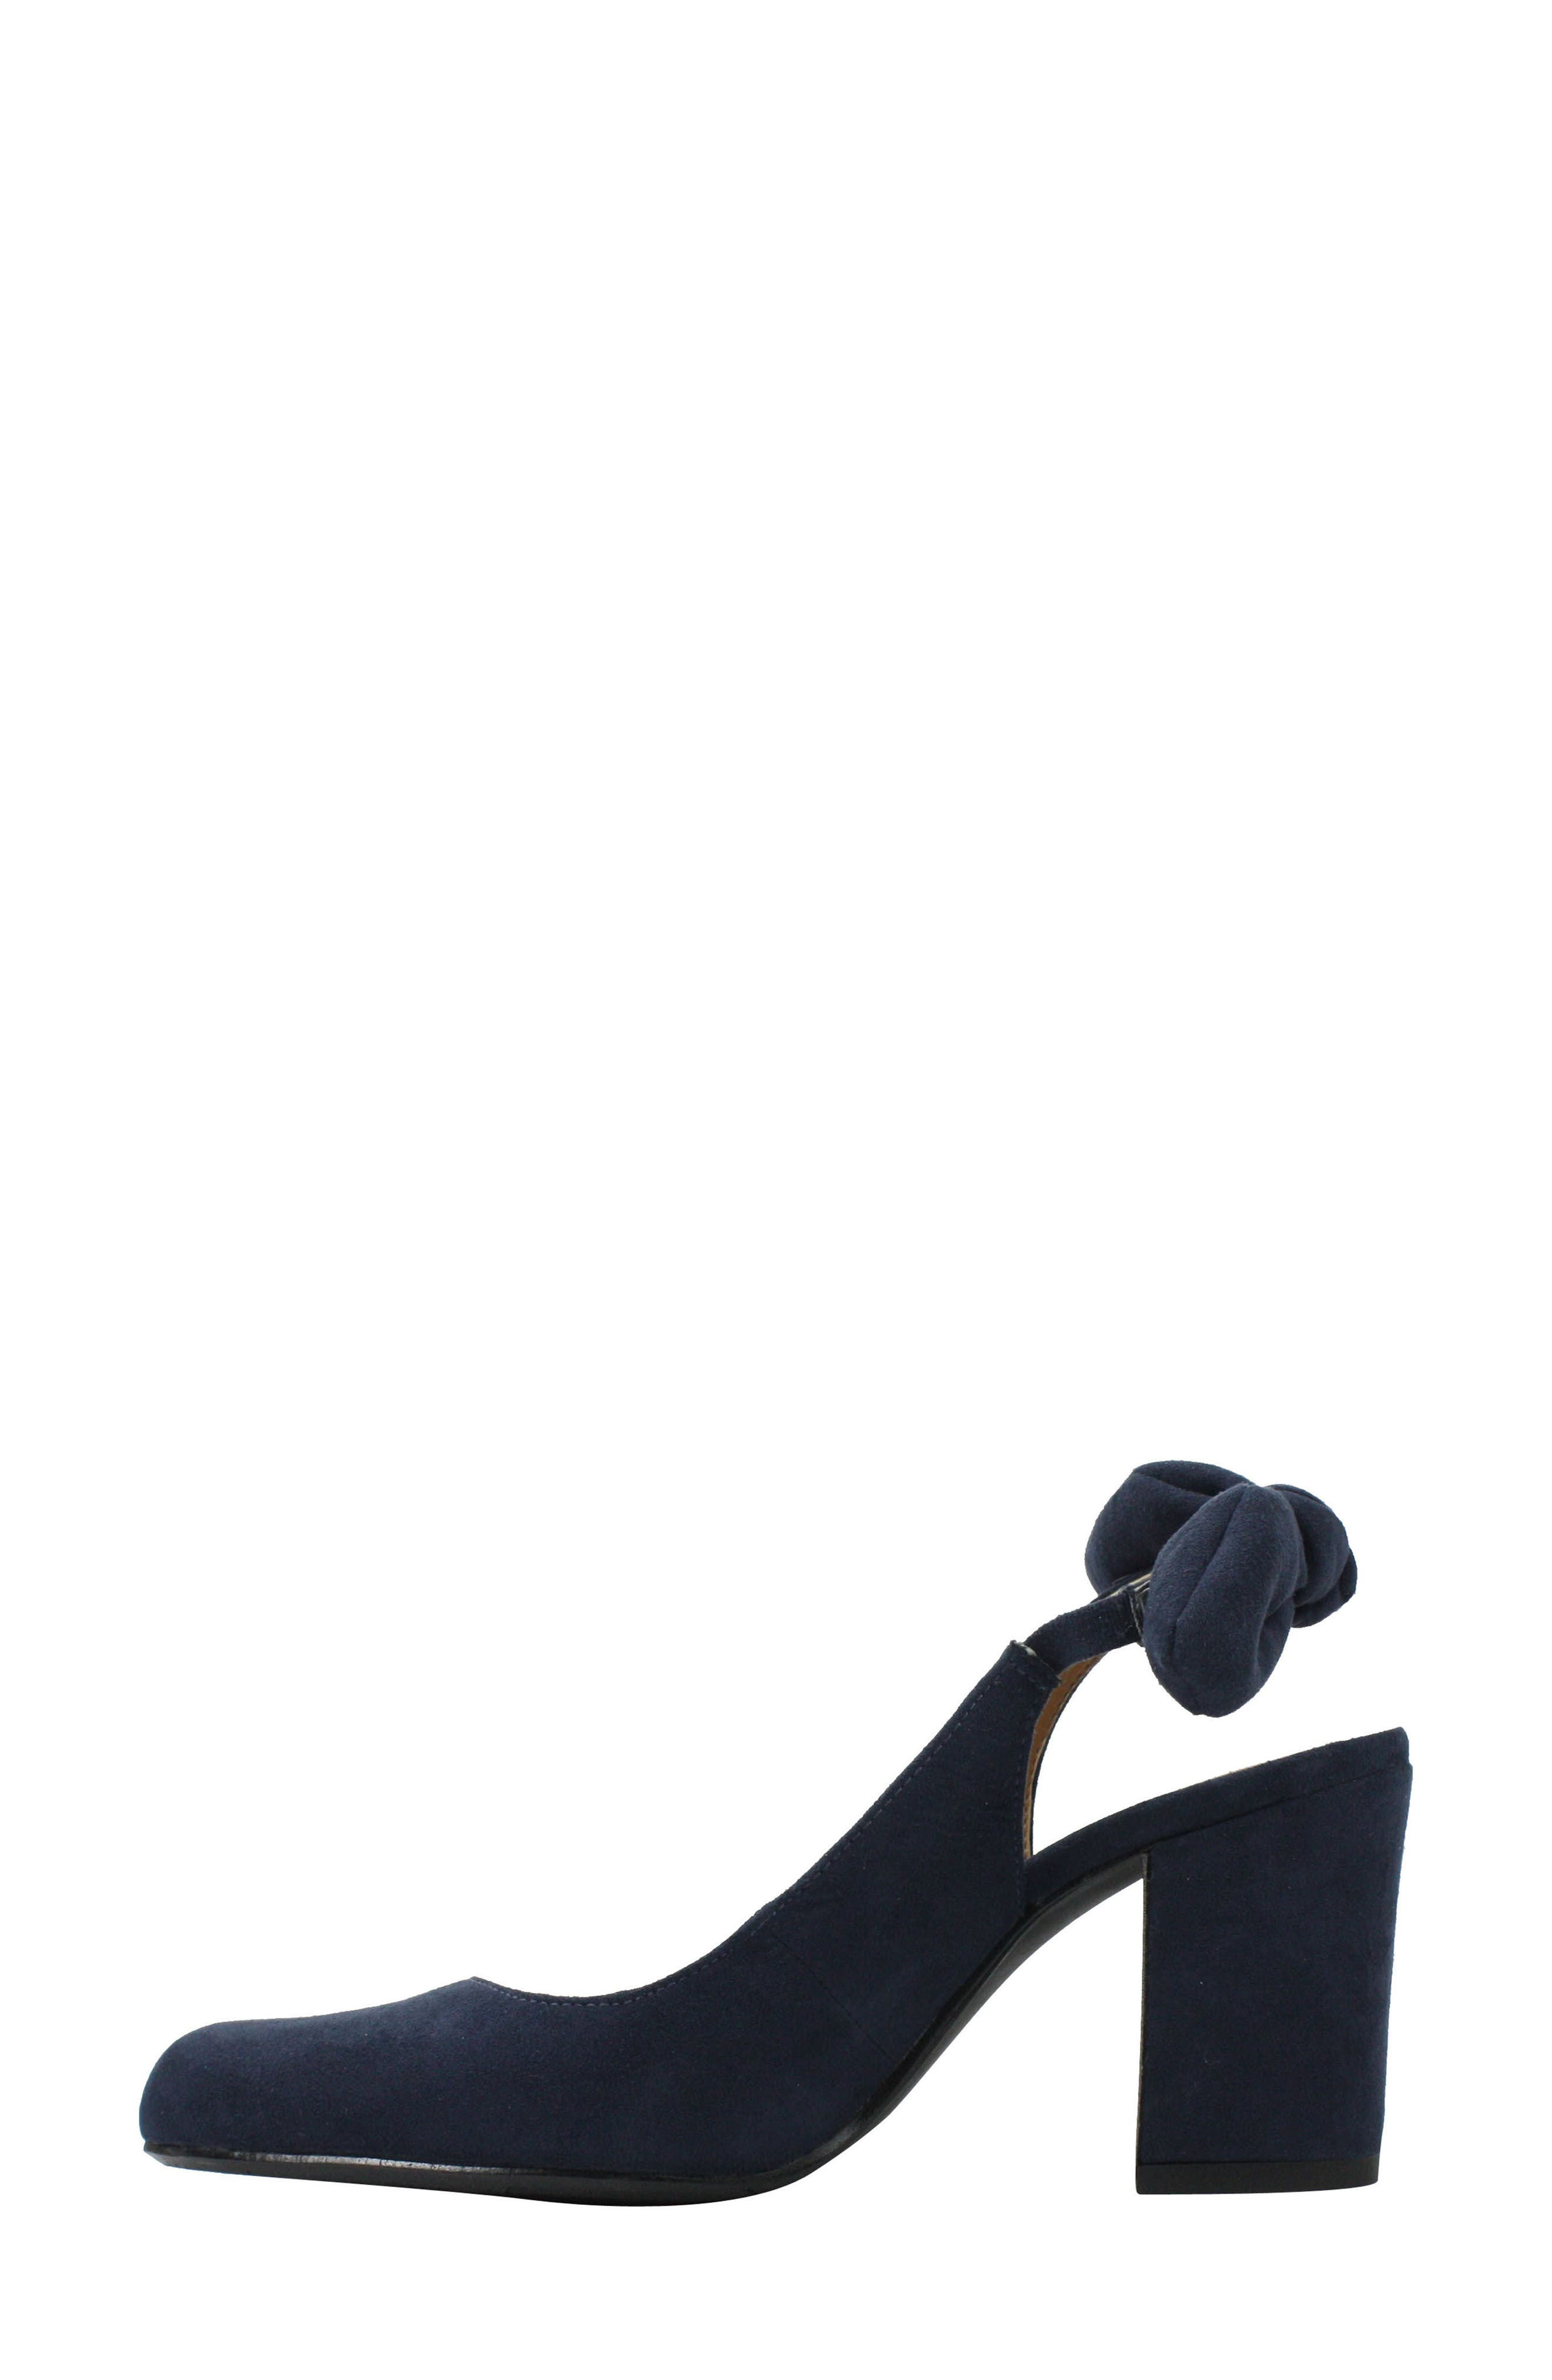 Kennedi Slingback Pump,                             Alternate thumbnail 2, color,                             Navy